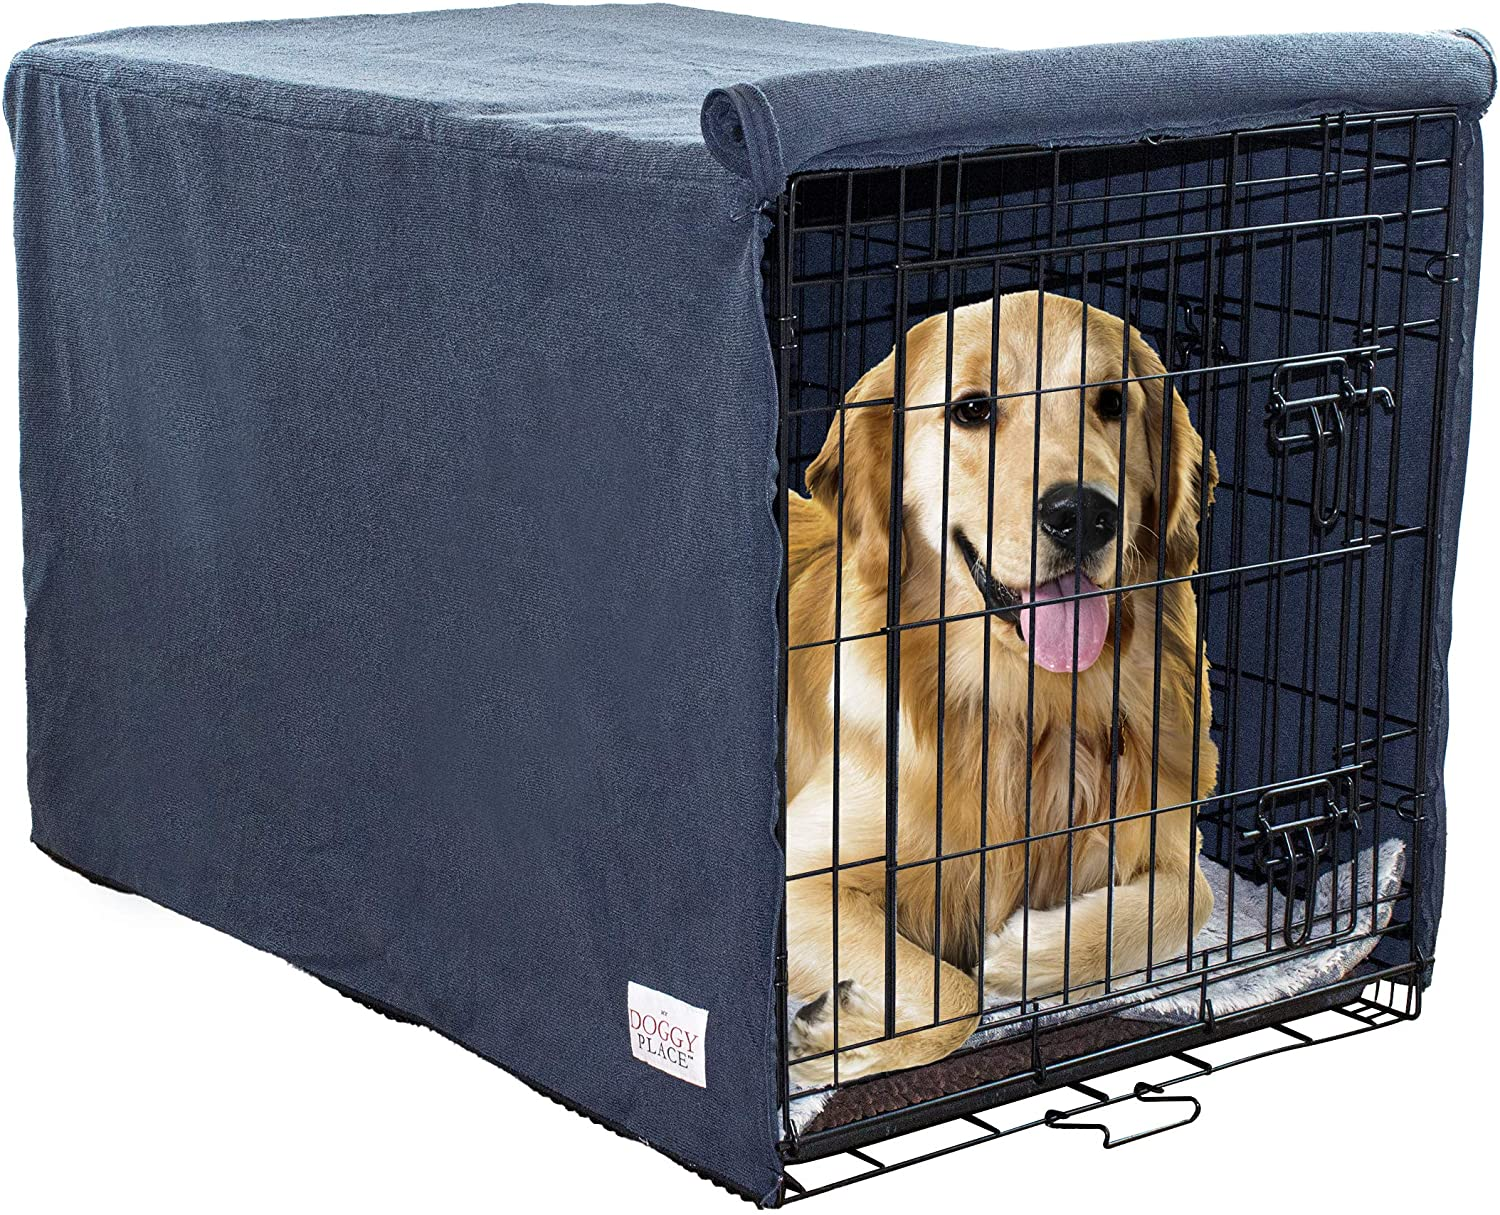 36 x 24 x 24, Brown My Doggy Place Ultra Absorbent Microfiber Chenille Small Dog Crate Cover for Pets Durable Premium Washable Kennel Protector Privacy Shield